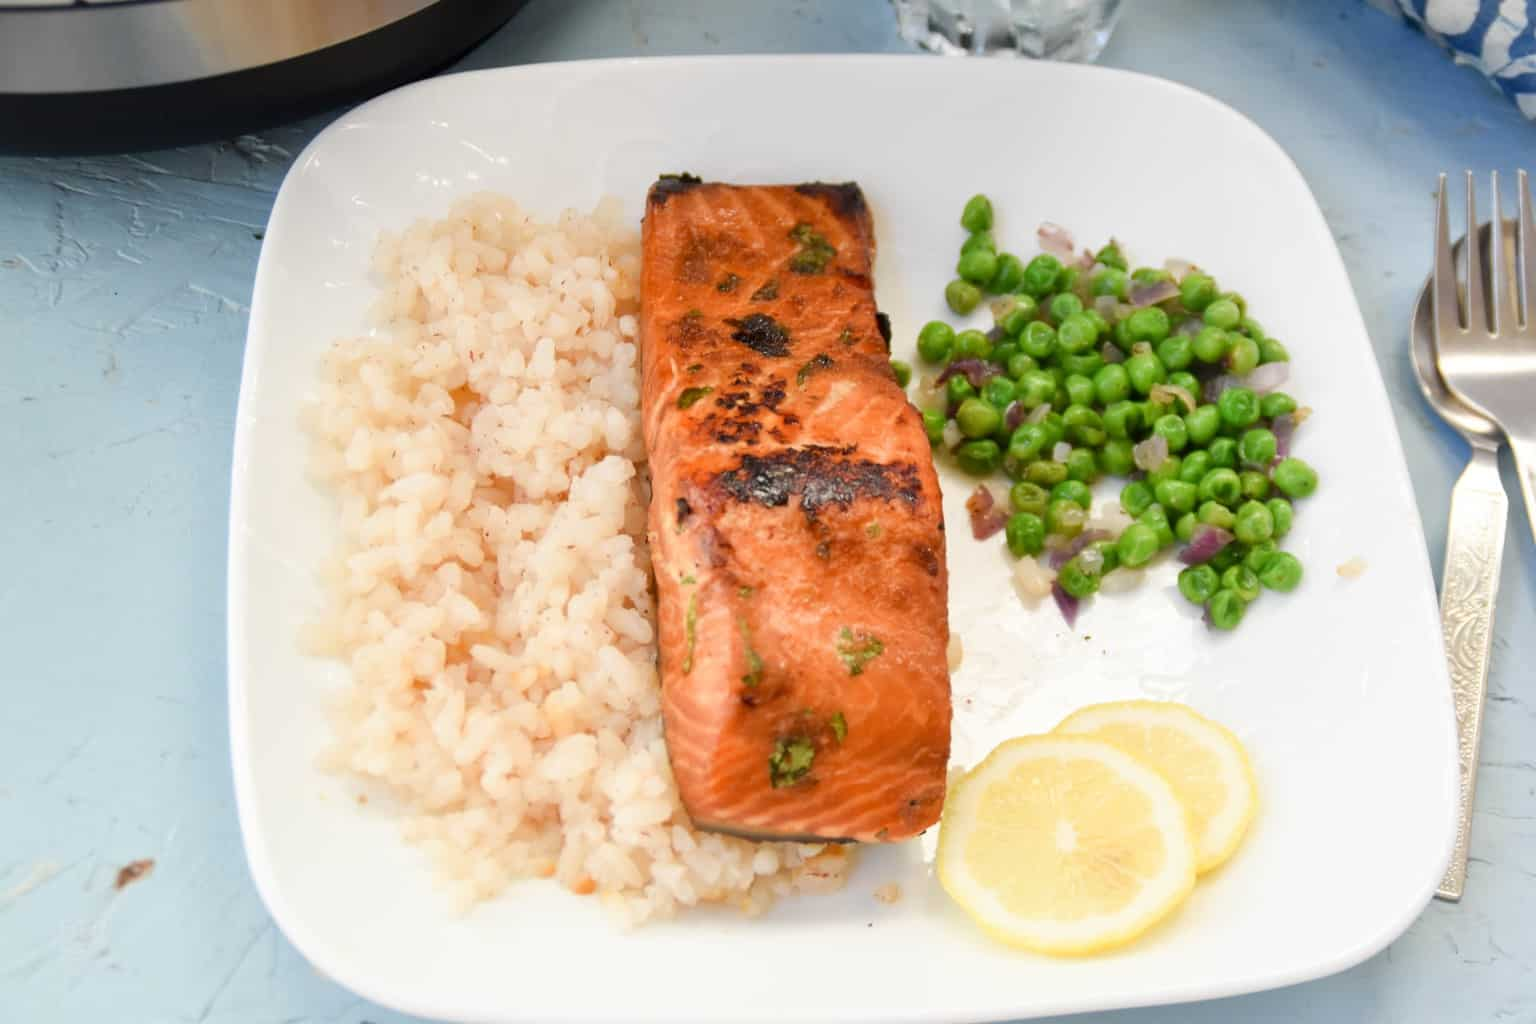 """<img src=""""https://cdn.shortpixel.ai/client/q_glossy,ret_img,w_1536,h_1024/sous vide salmon.jpg"""" alt=""""sous vide salmon with ginger and soy sauce marinade 2"""">"""